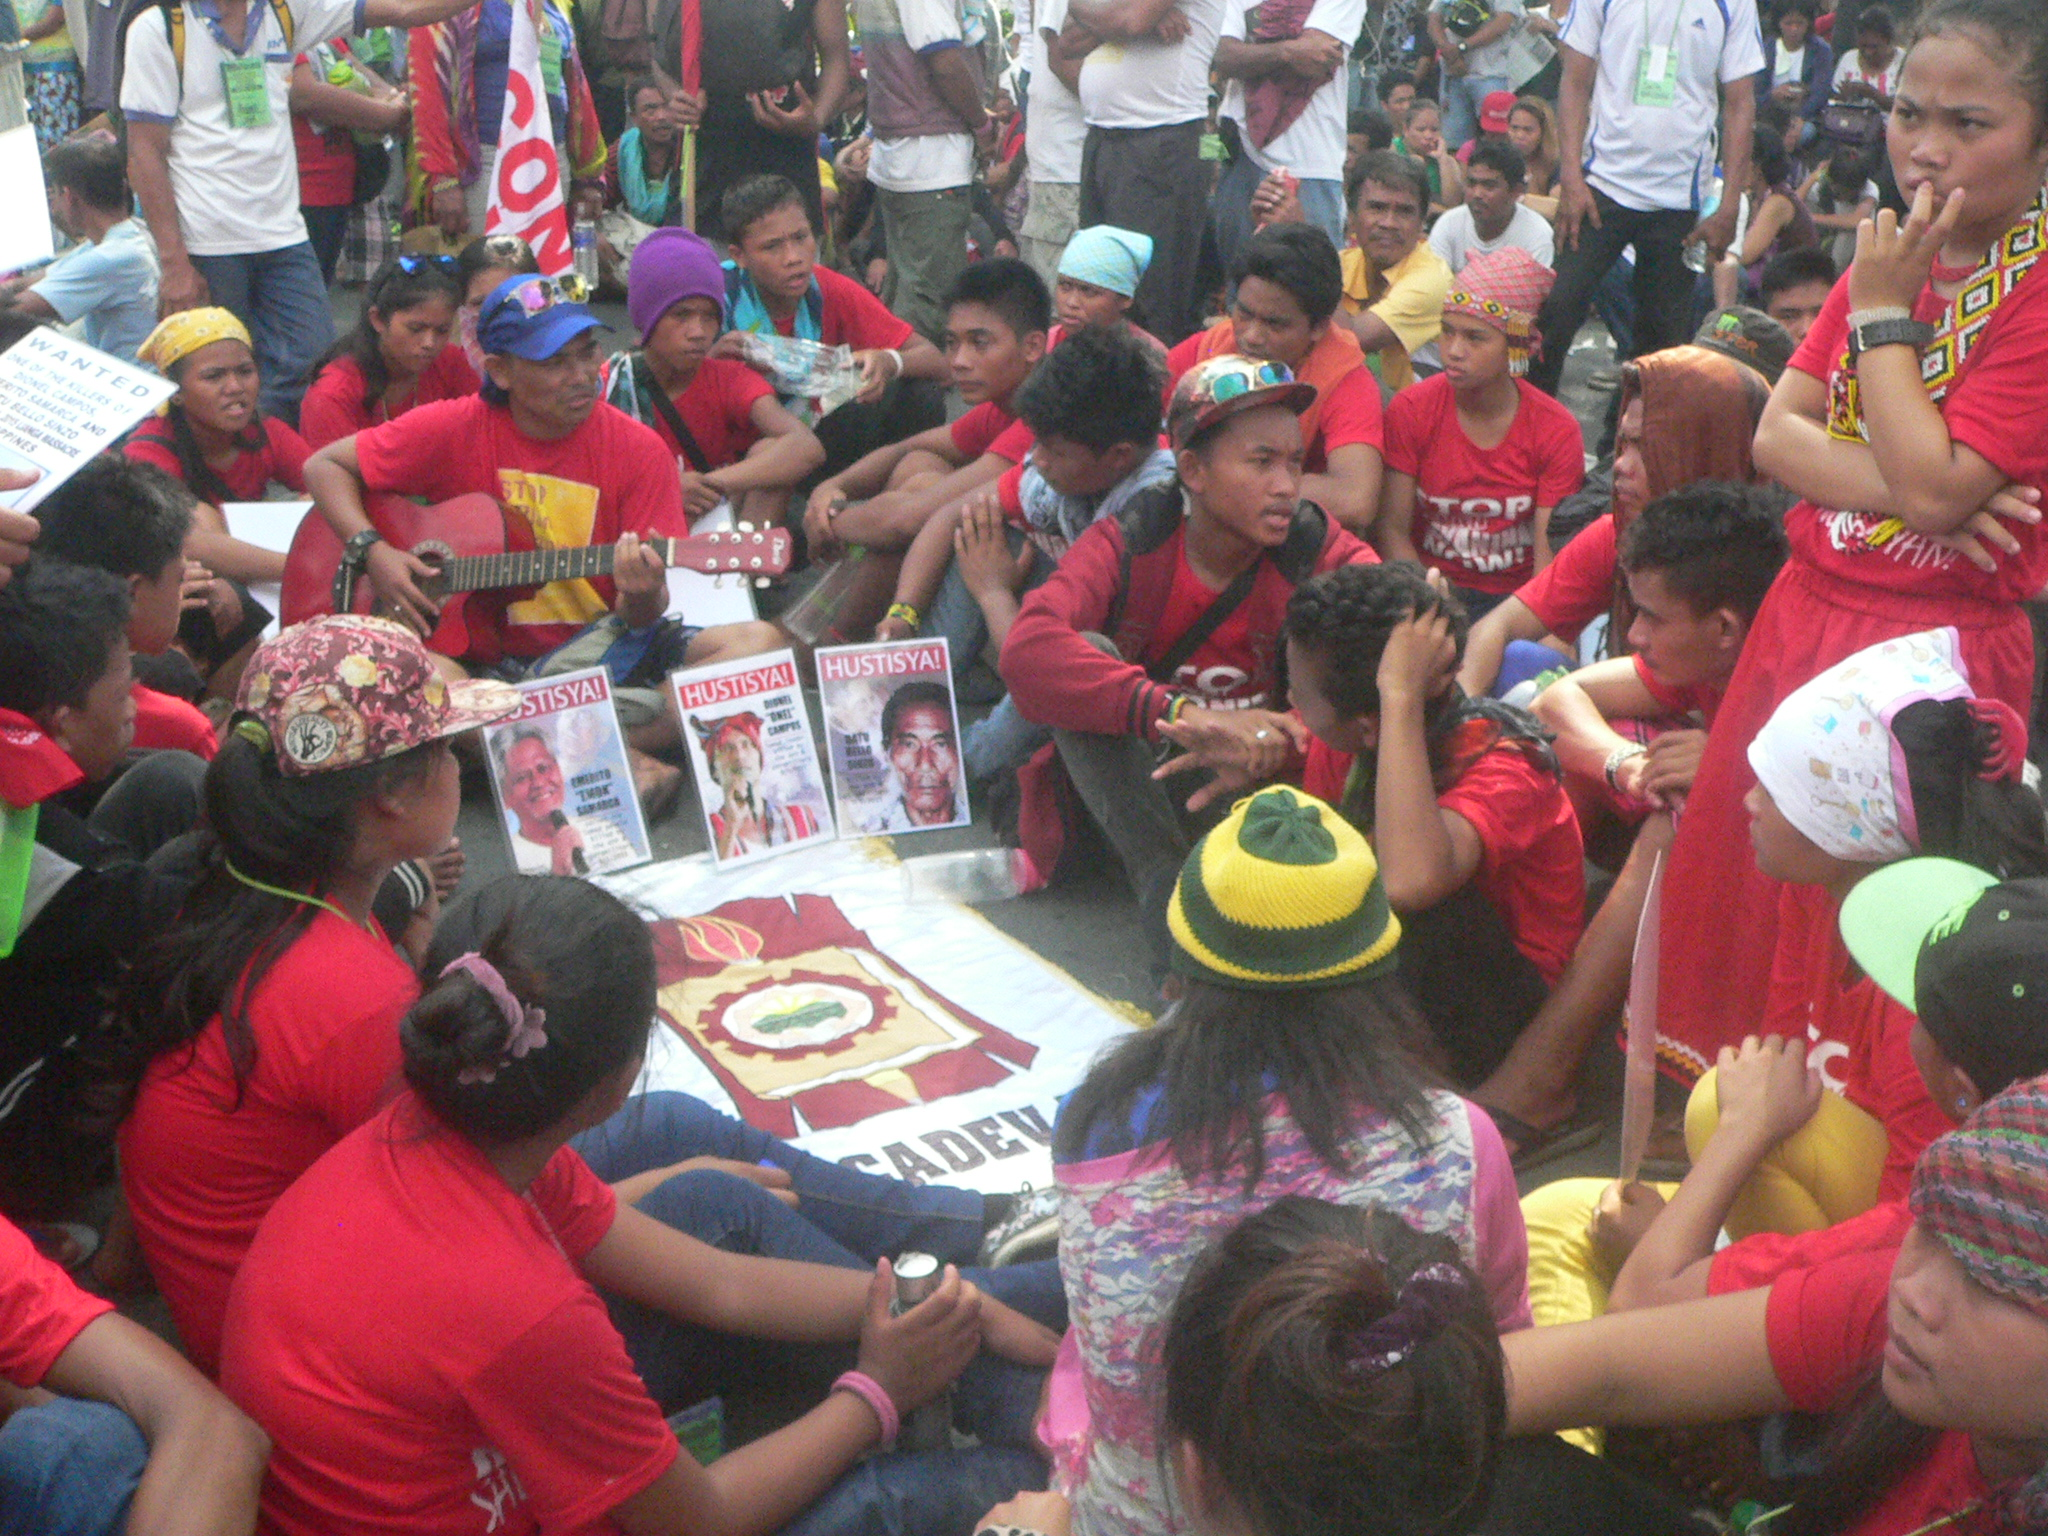 Alcadev students gathered around a Lumad leader outside the Batasang Pambansa on July 25, 2016. (Photo by Dee Ayroso/Bulatlat)